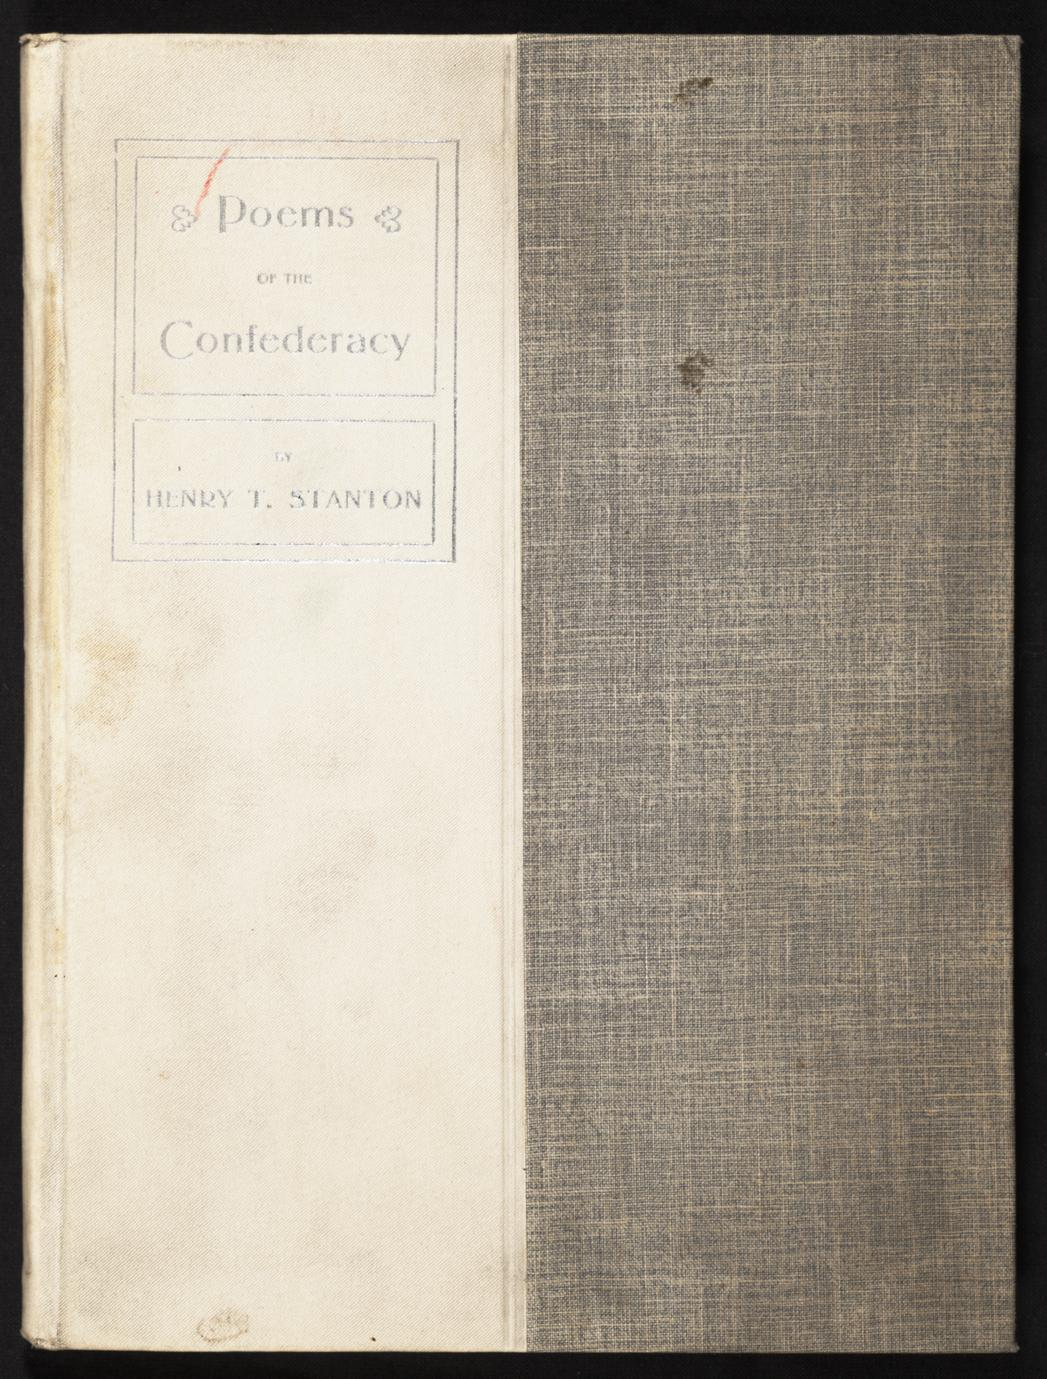 Poems of the Confederacy : being selections from the writings of Major Henry T. Stanton of Kentucky